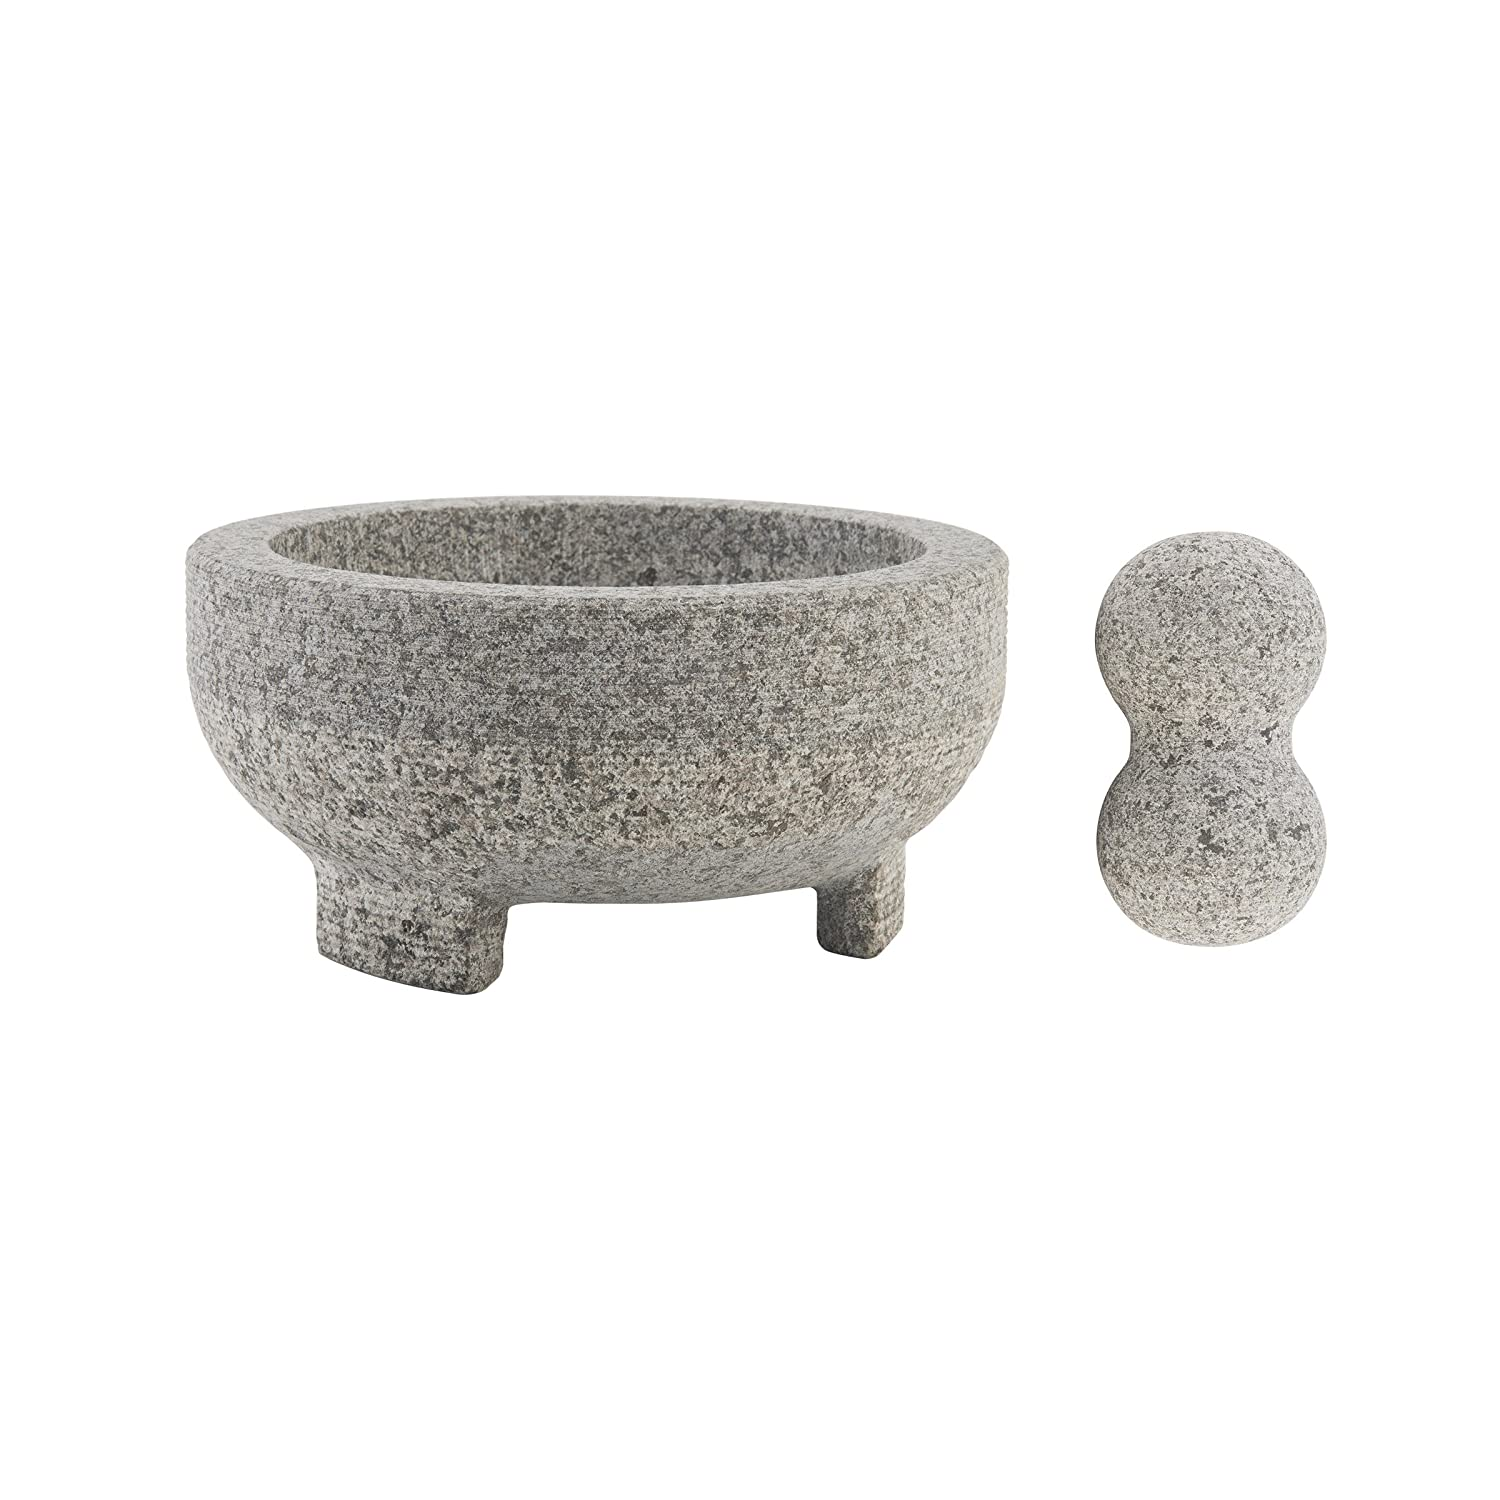 Farberware 5216415 Professional Granite Molcajete Mortar and Pestle Stone Grinder, 4-Cup